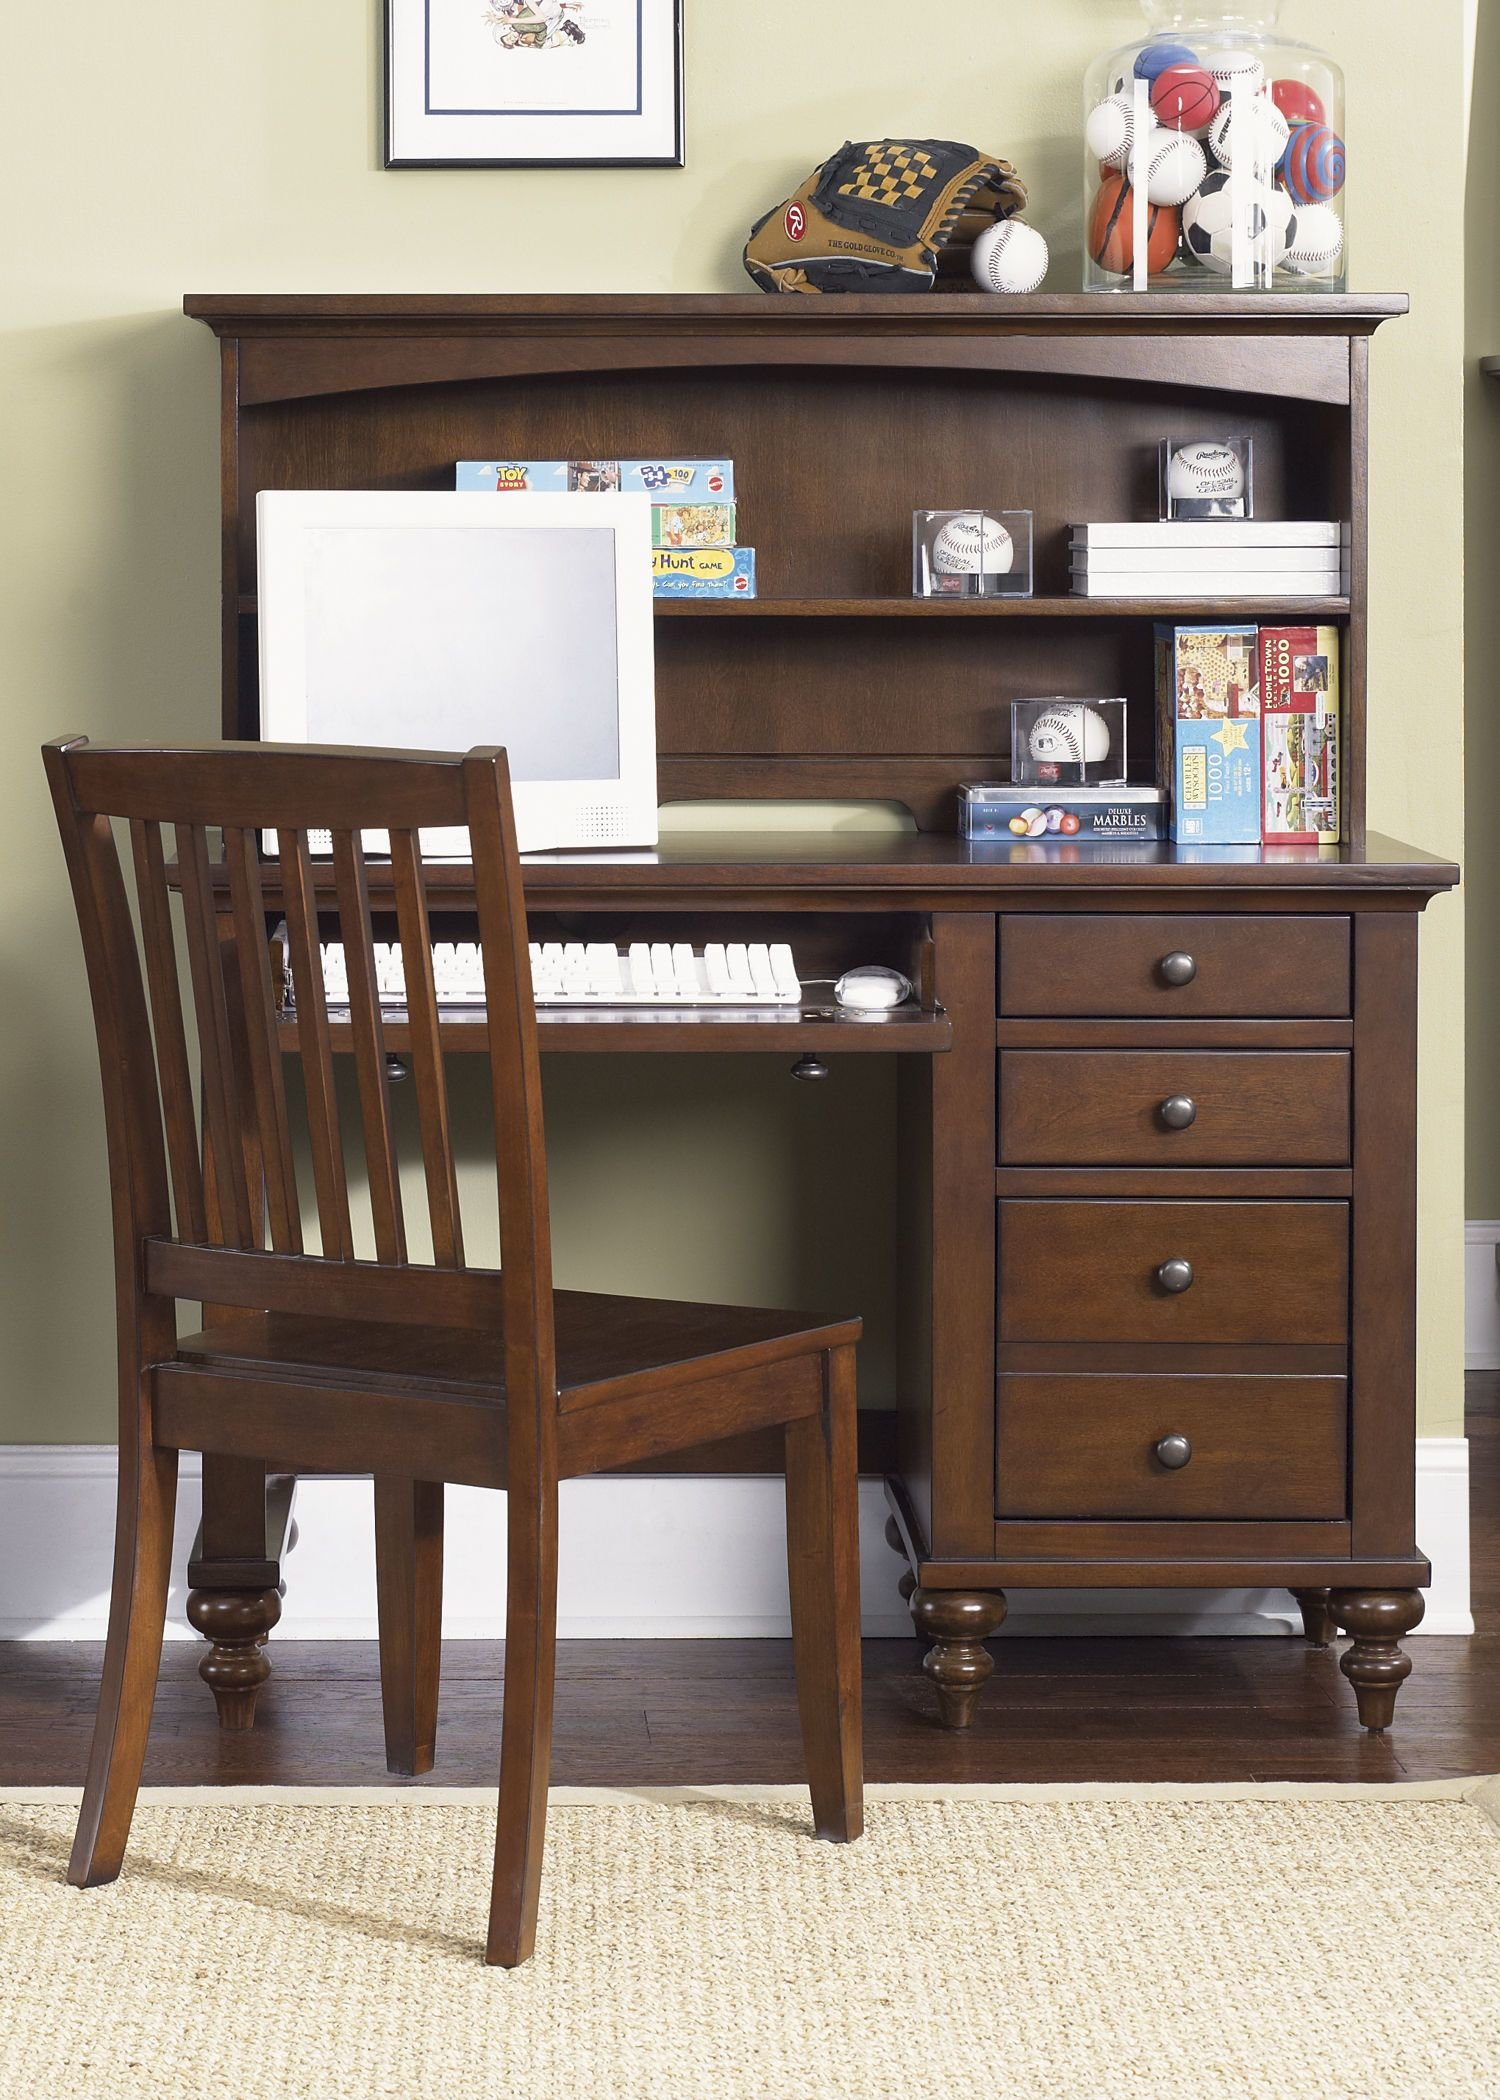 Best Liberty Furniture Youth Bedroom Student Desk 277 Ybr Sd With Pictures